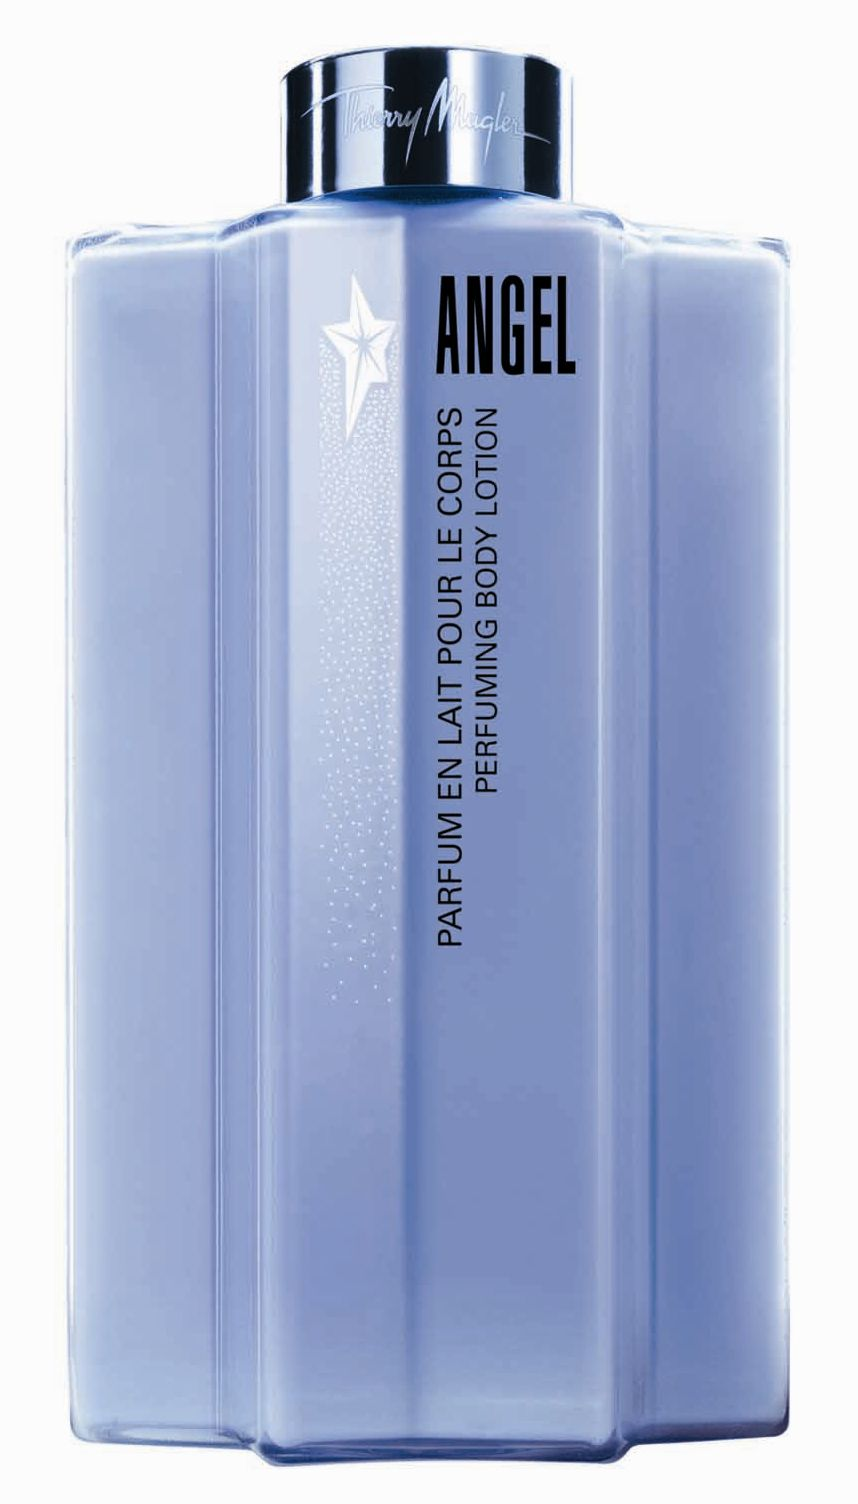 Mugler Angel Perfume Body Lotion 200ml